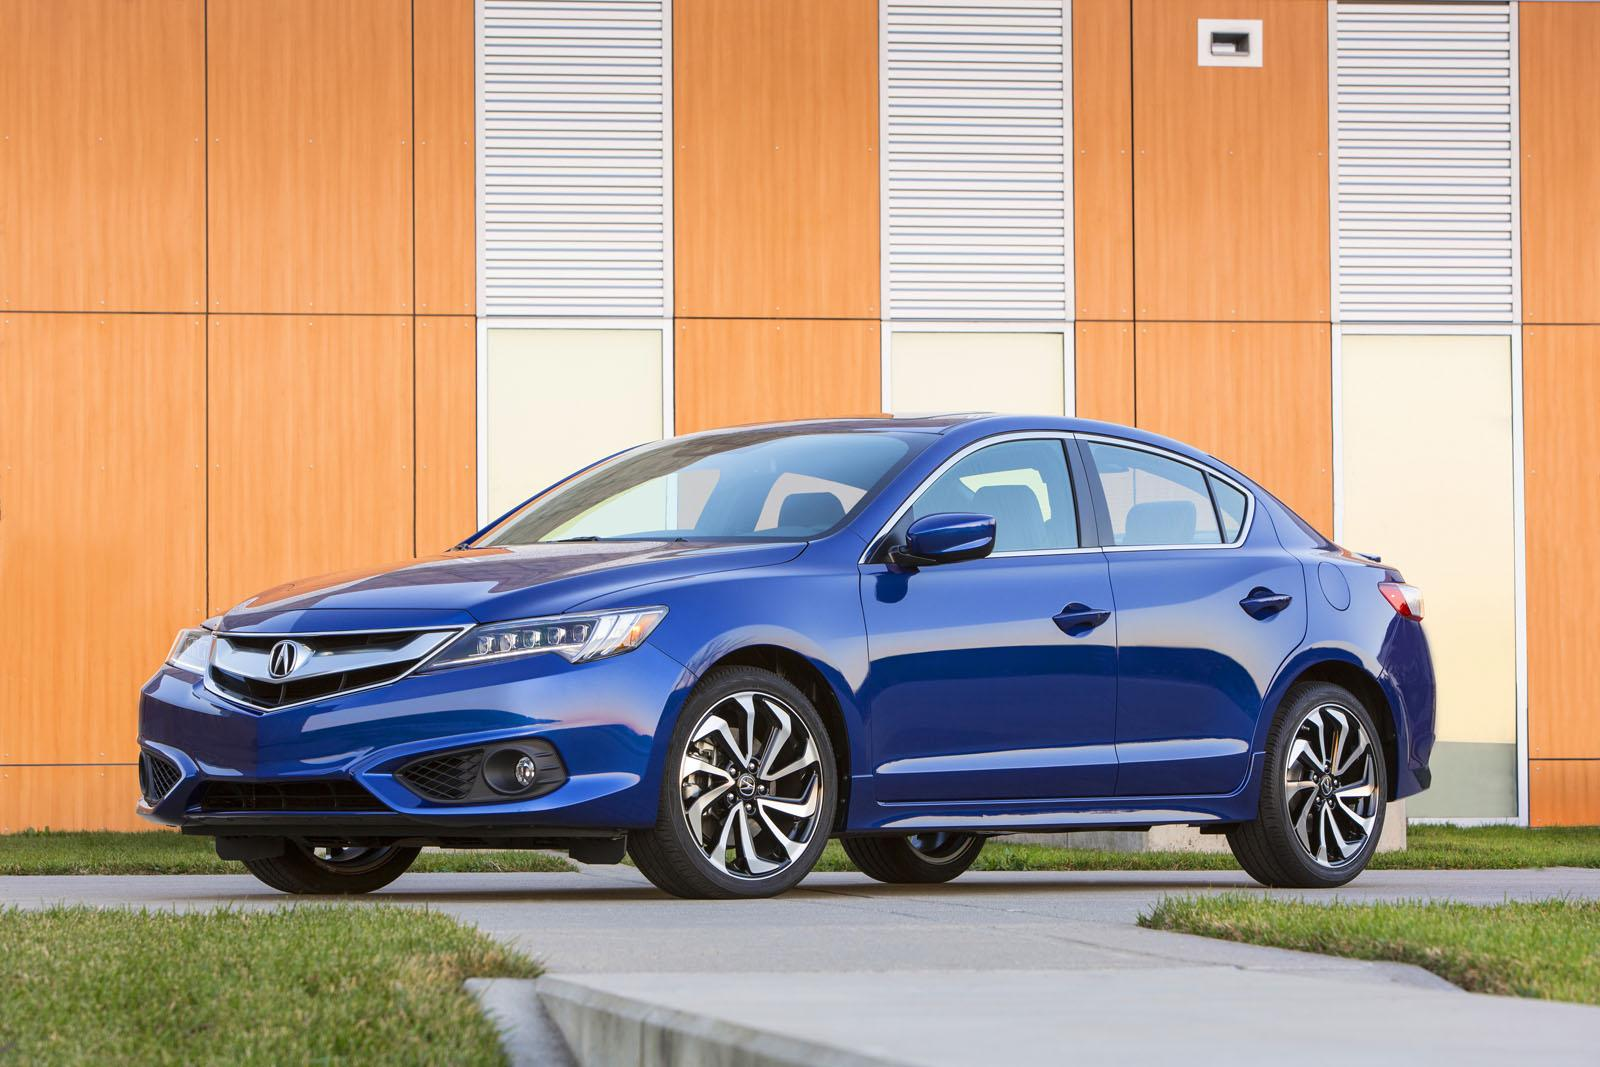 Unique 2016 Acura ILX Features And Details  Machinespidercom